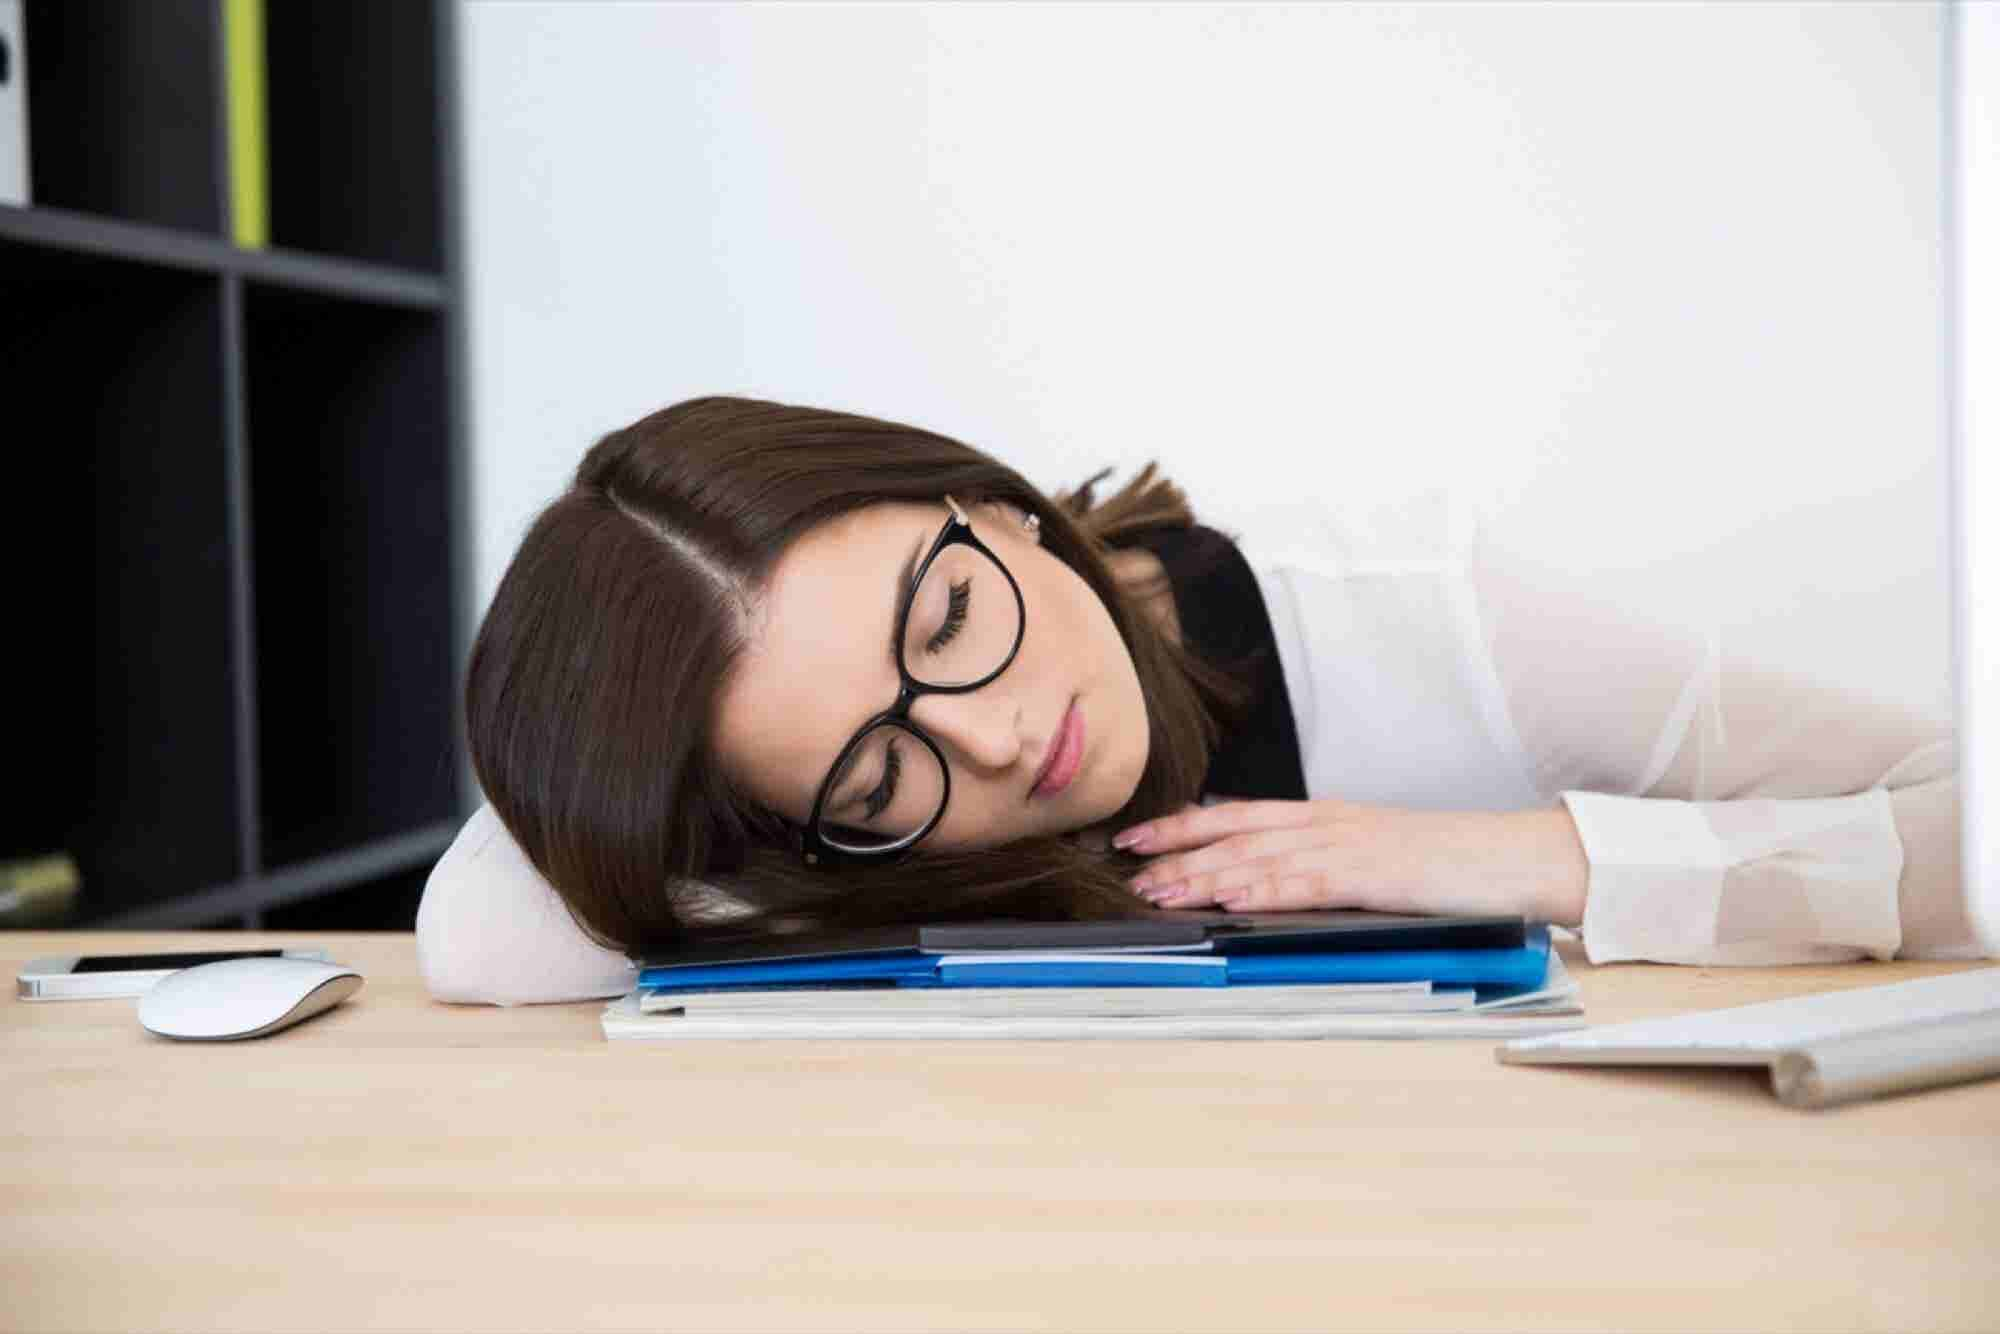 Most People Are Failing to Get the Right Amount of Sleep, Survey Says